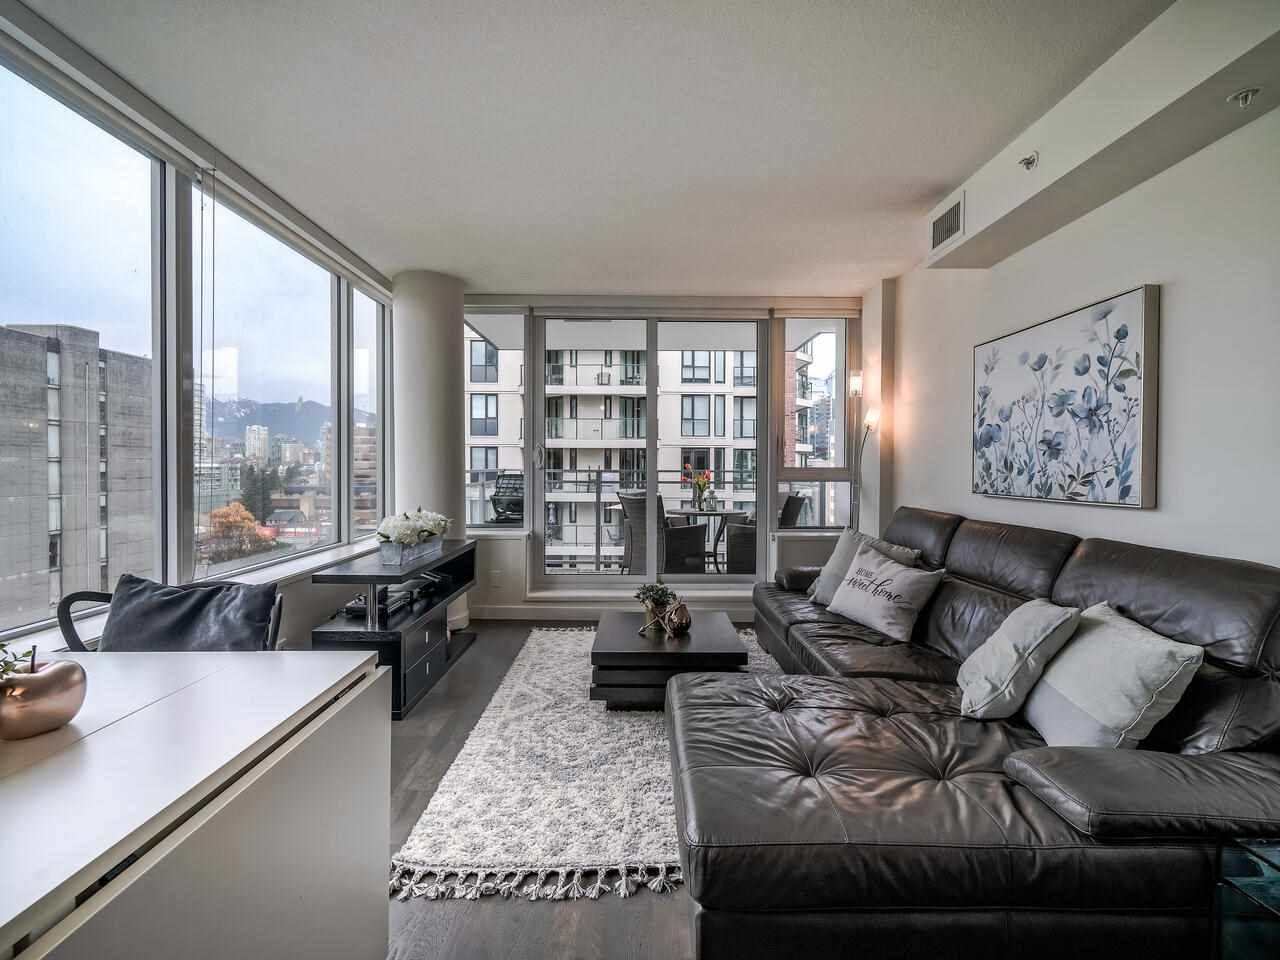 Main Photo: 1501 1009 HARWOOD Street in Vancouver: West End VW Condo for sale (Vancouver West)  : MLS®# R2561317